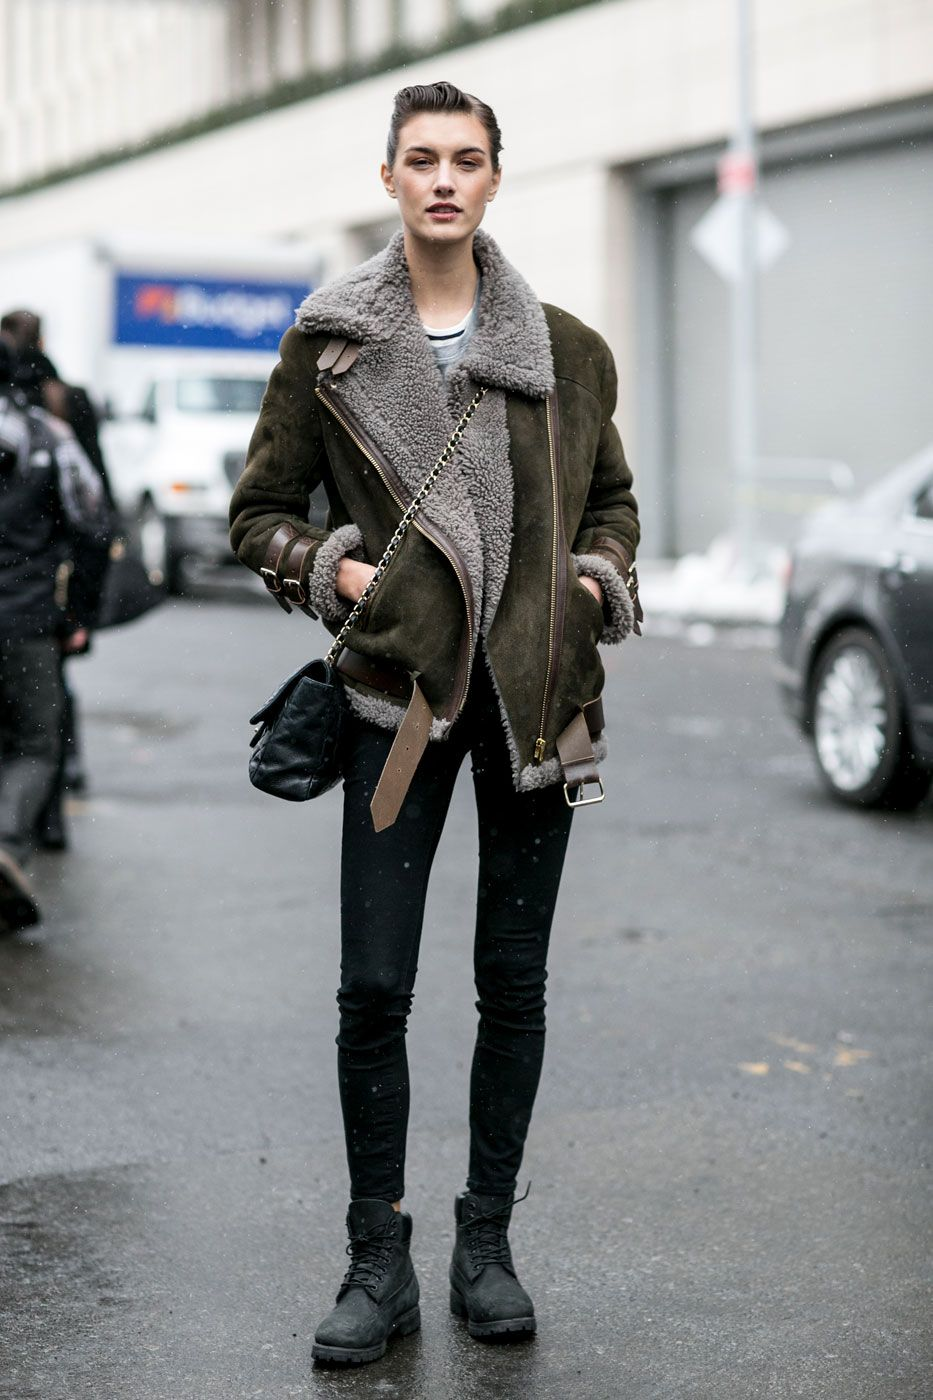 ef3dea1196 79 Incredible Model-Off-Duty Street Style Outfits From New York ...